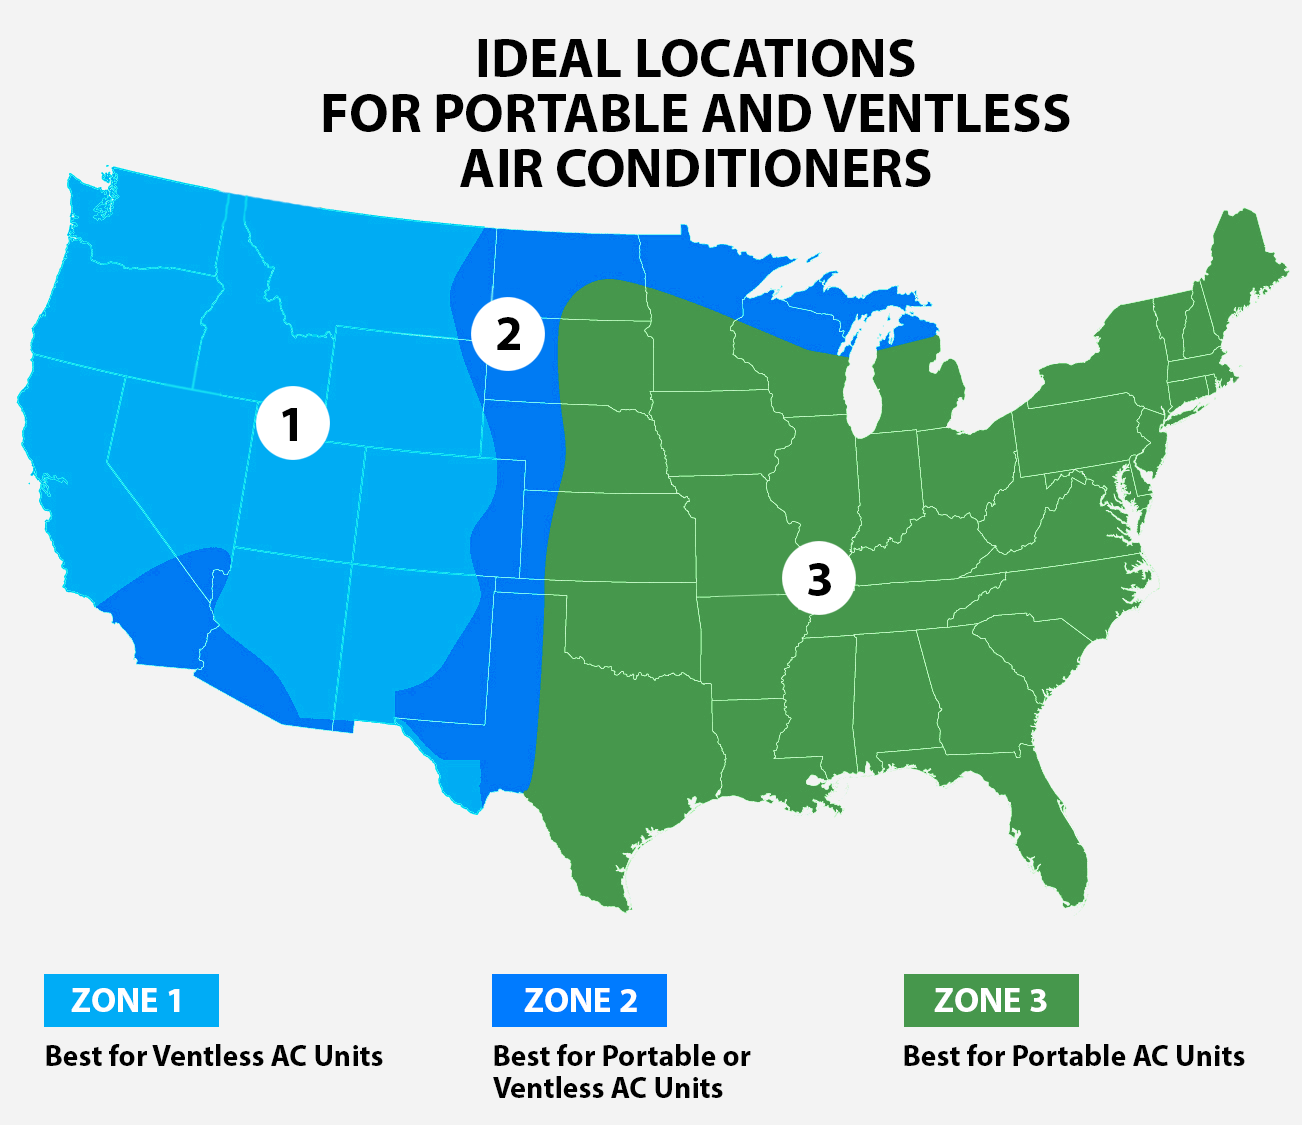 Graphic of Map for Portable and Ventless AC Units